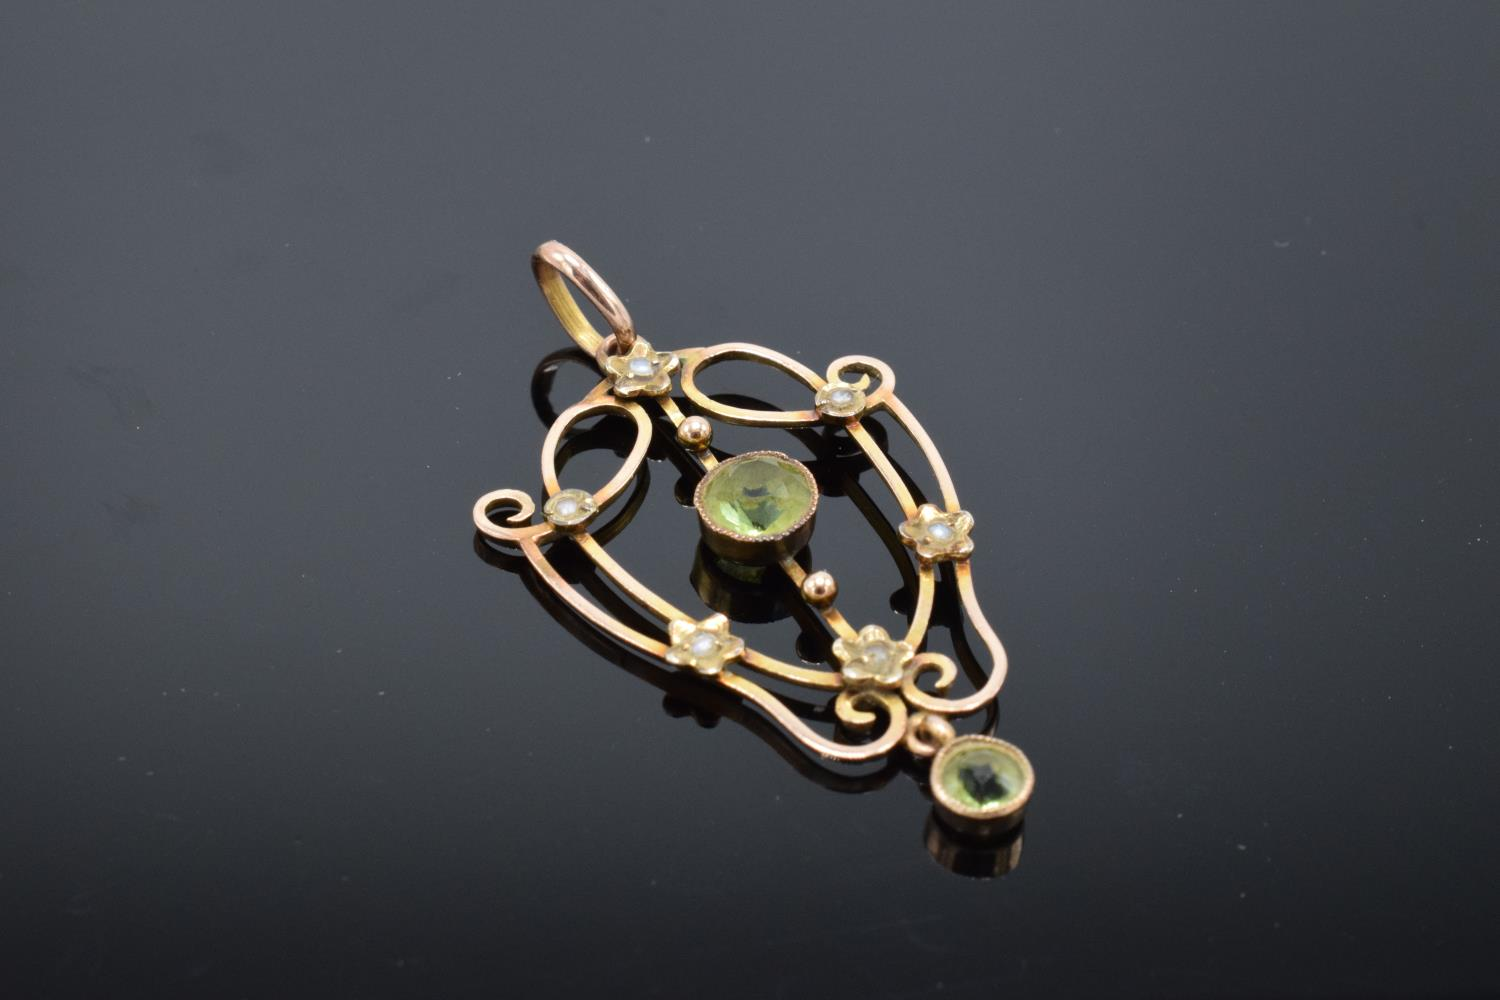 An antique 9ct gold ornate pendant set with peridot and pearls. Gross weight 2.1 grams. Stamp to